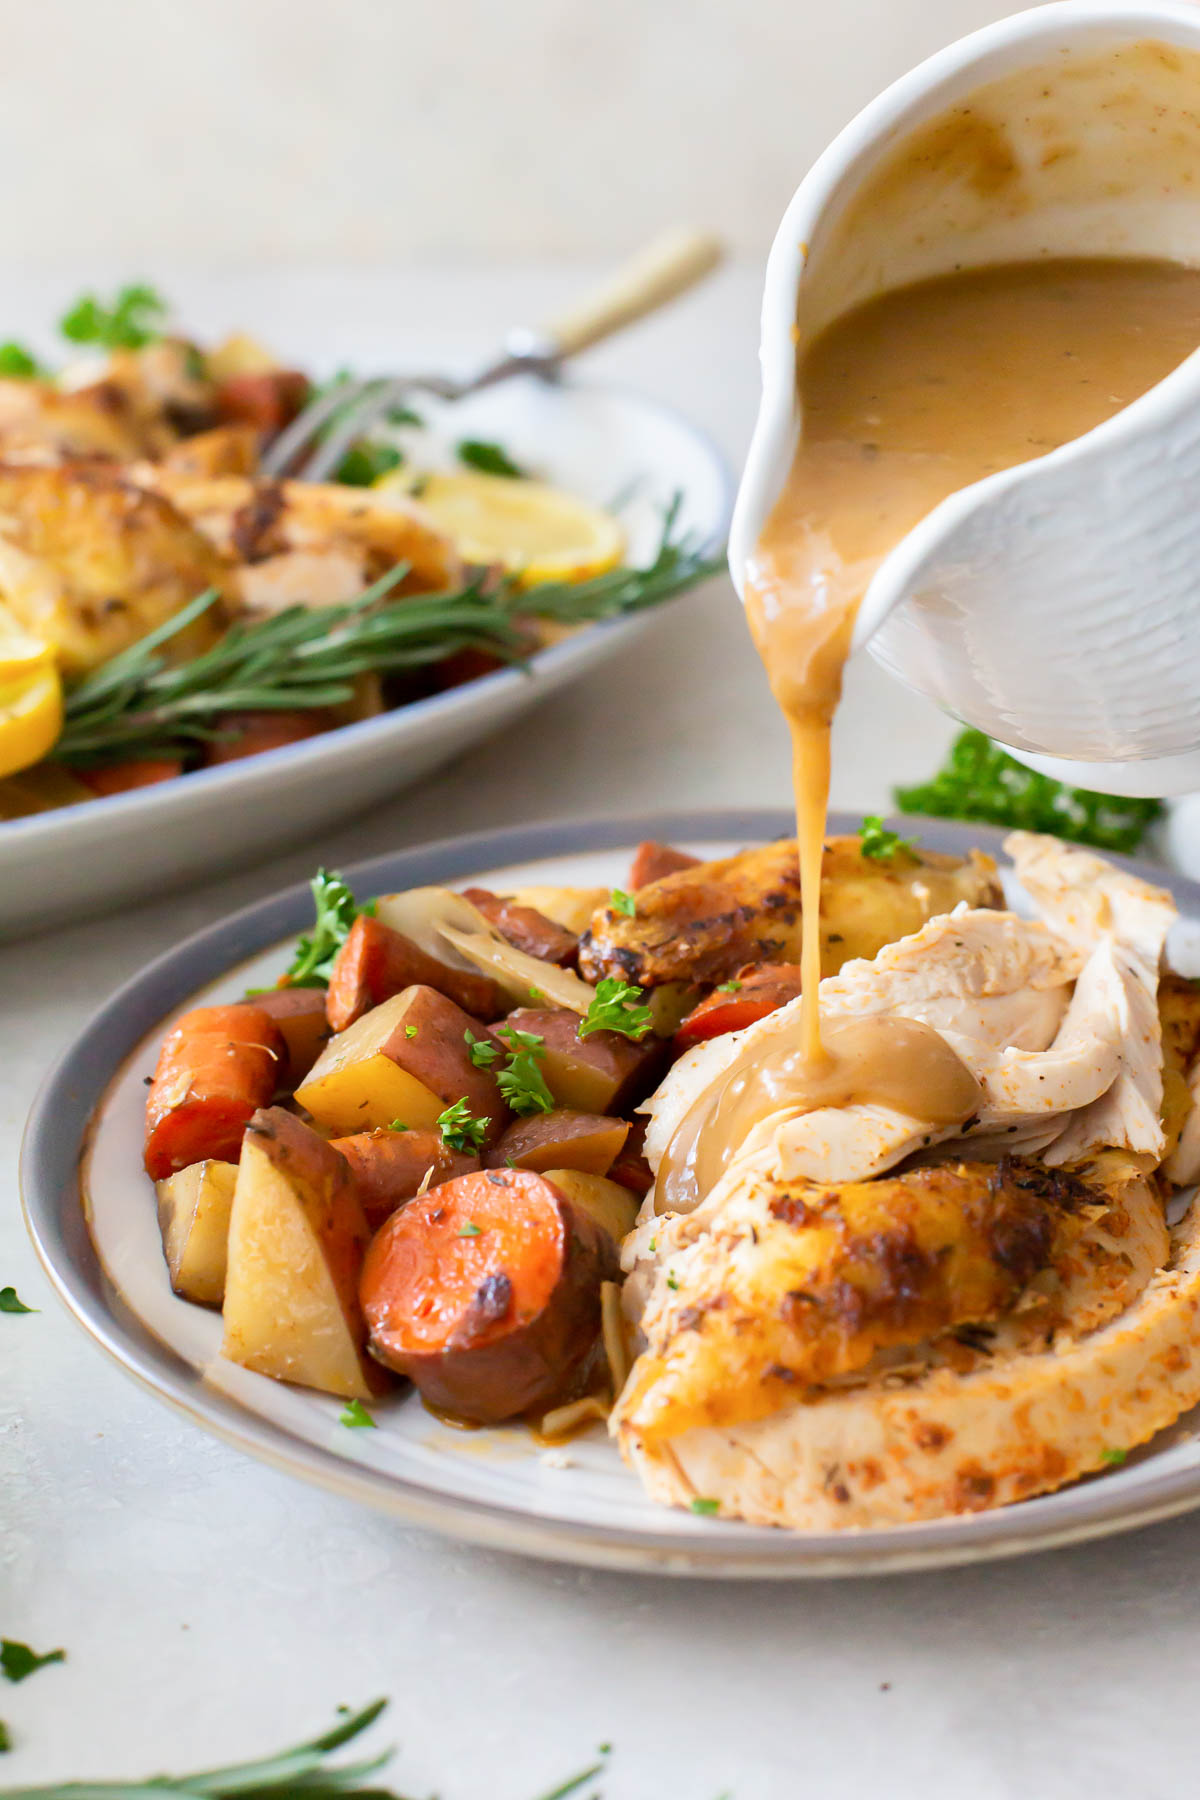 pouring gravy onto chicken on a plate with vegetables